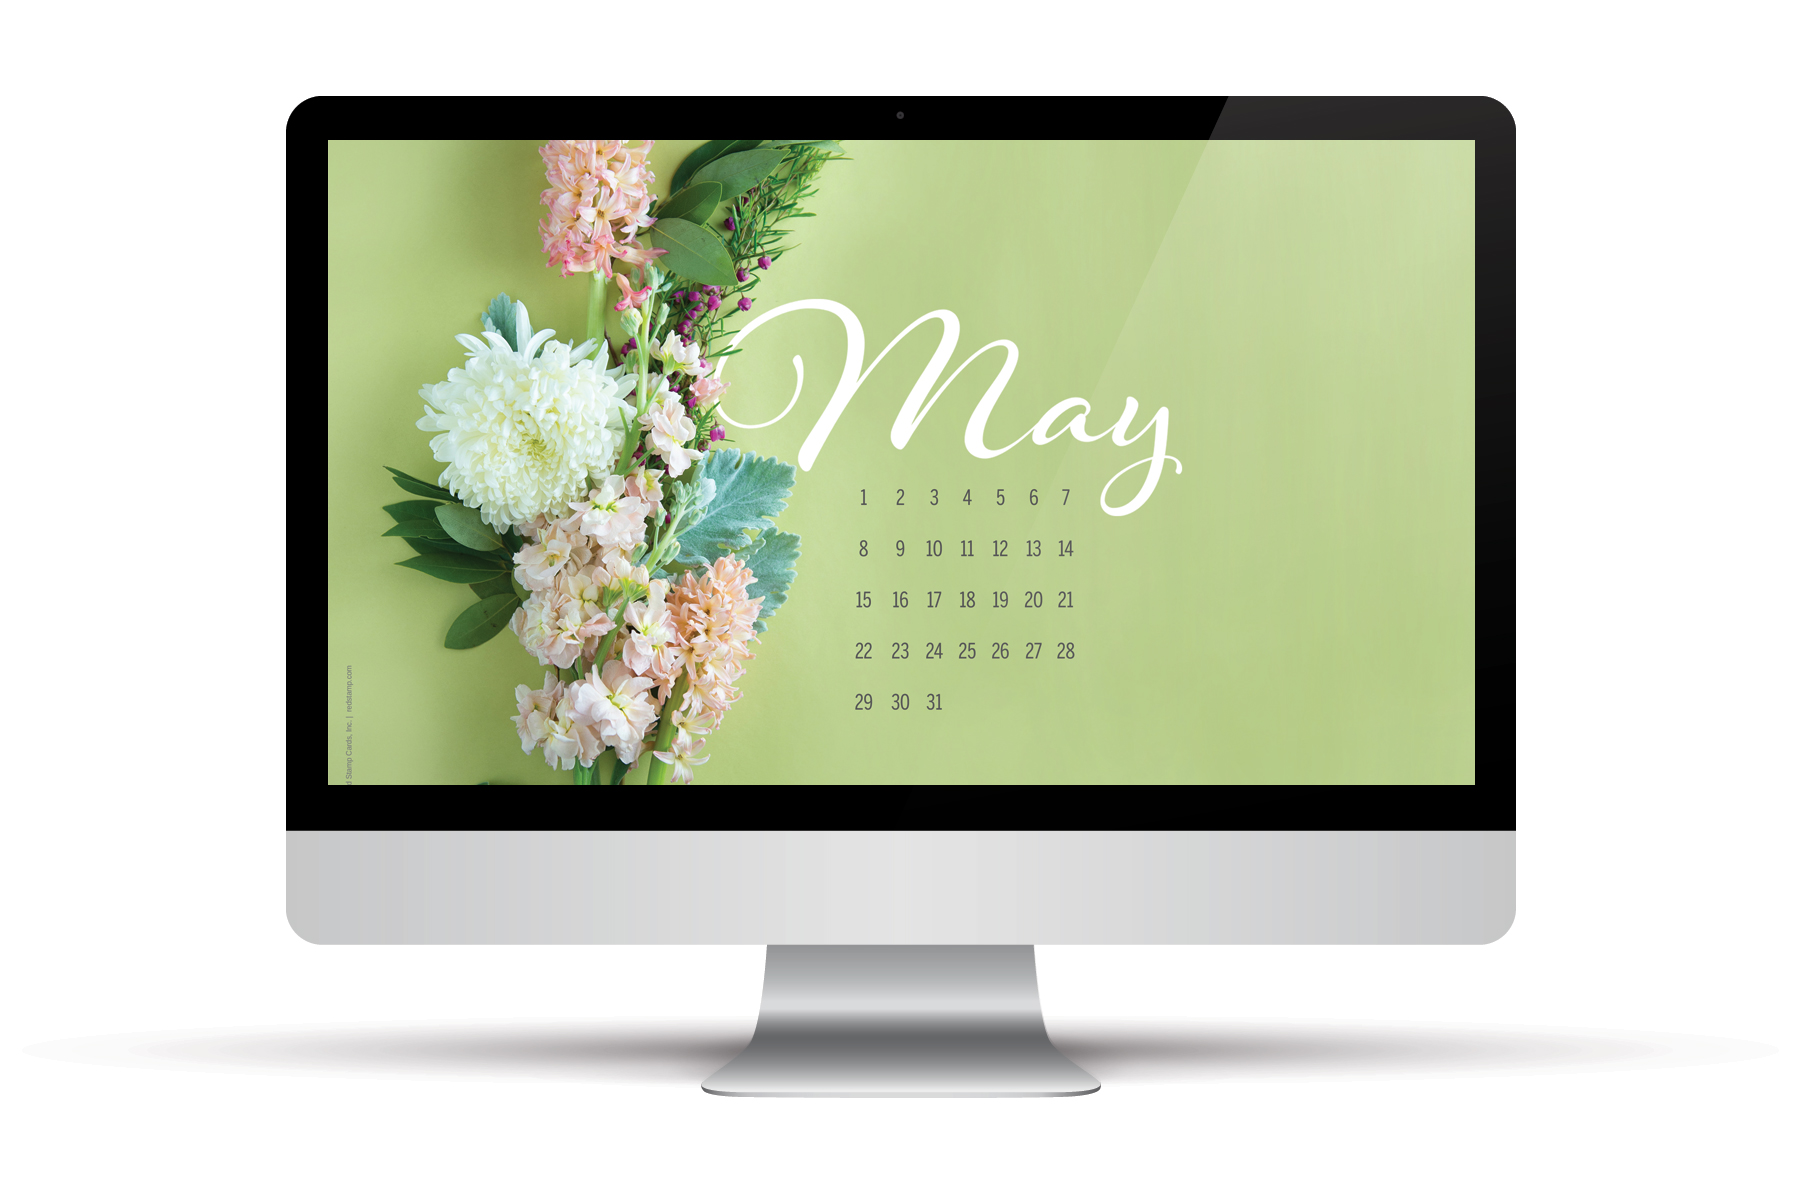 Enjoy our May 2016 calendars and wallpaper We were inspired 1800x1200